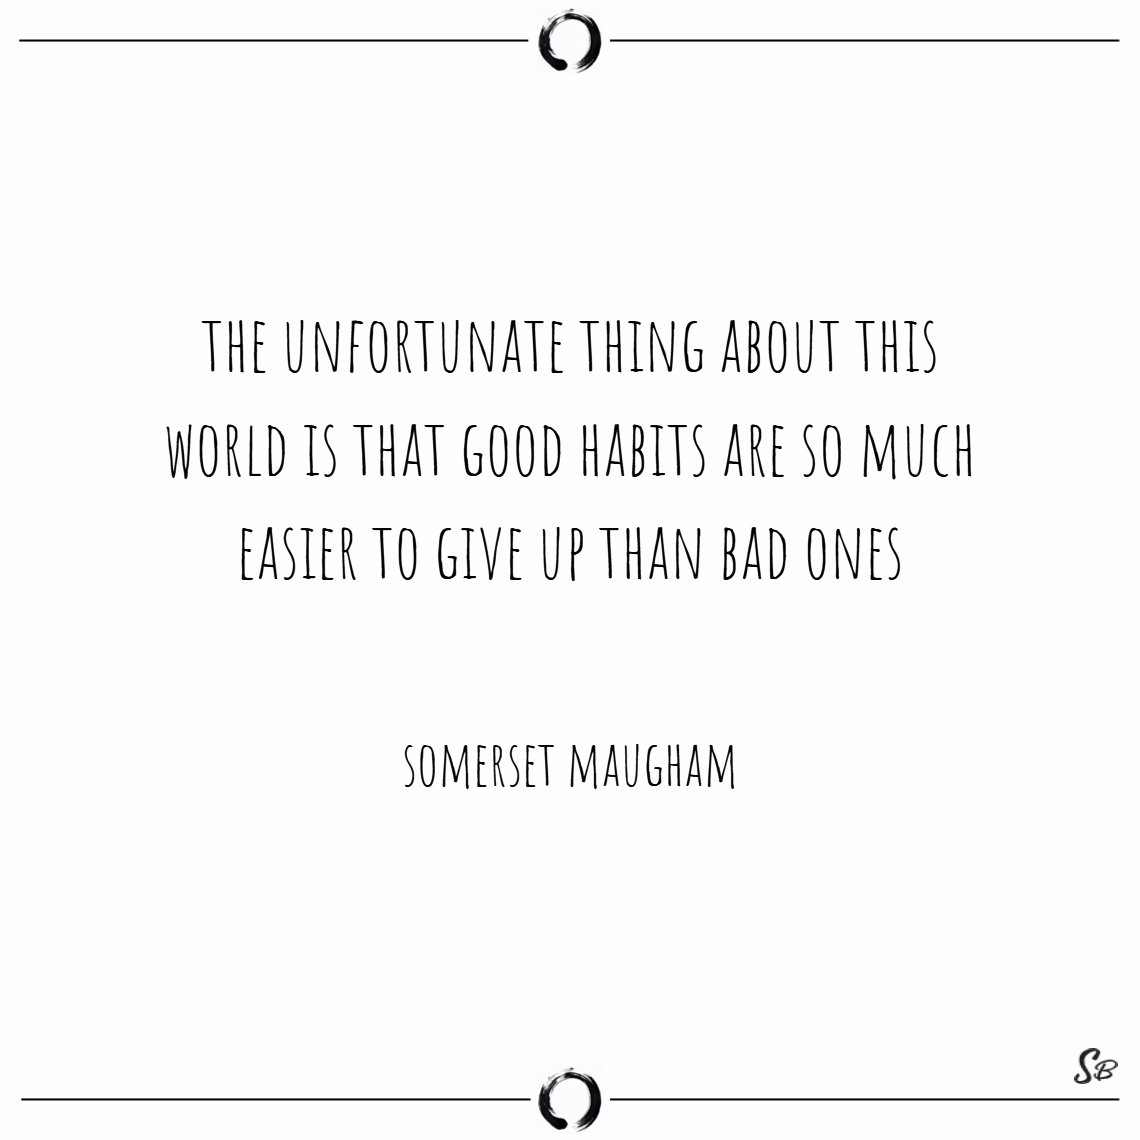 The unfortunate thing about this world is that good habits are so much easier to give up than bad ones. – somerset maugham